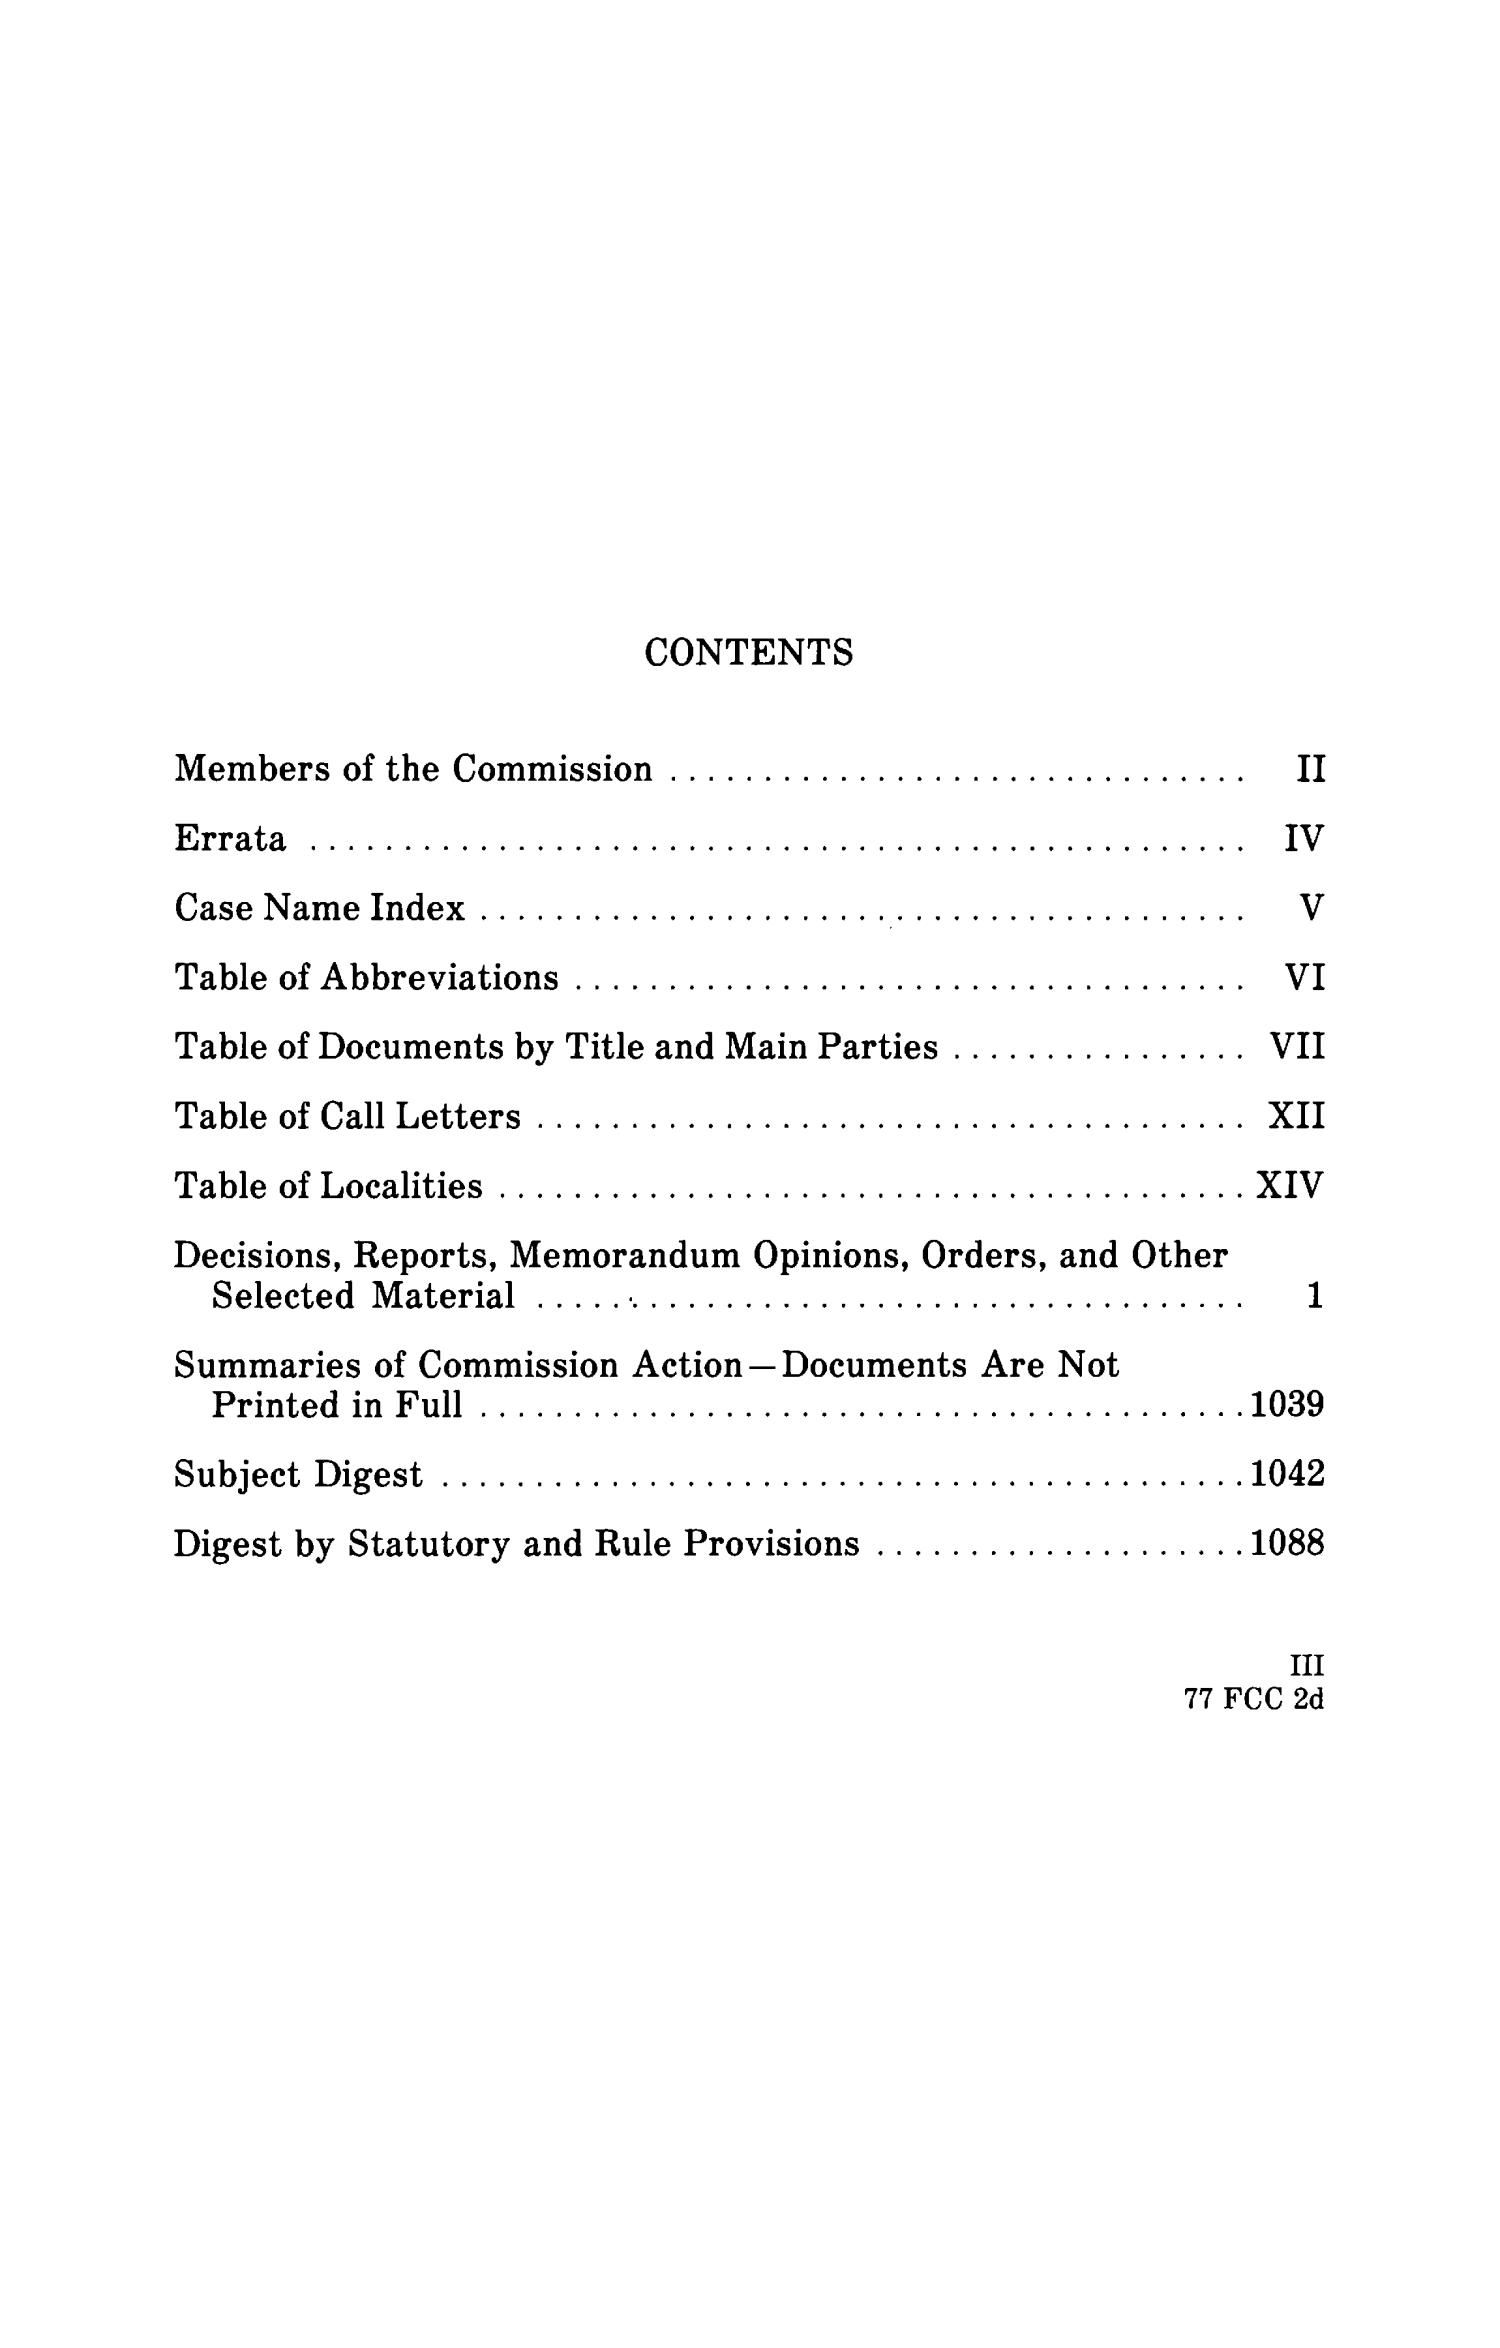 FCC Reports, Second Series, Volume 77, April 26, 1980 to June 20, 1980                                                                                                      III